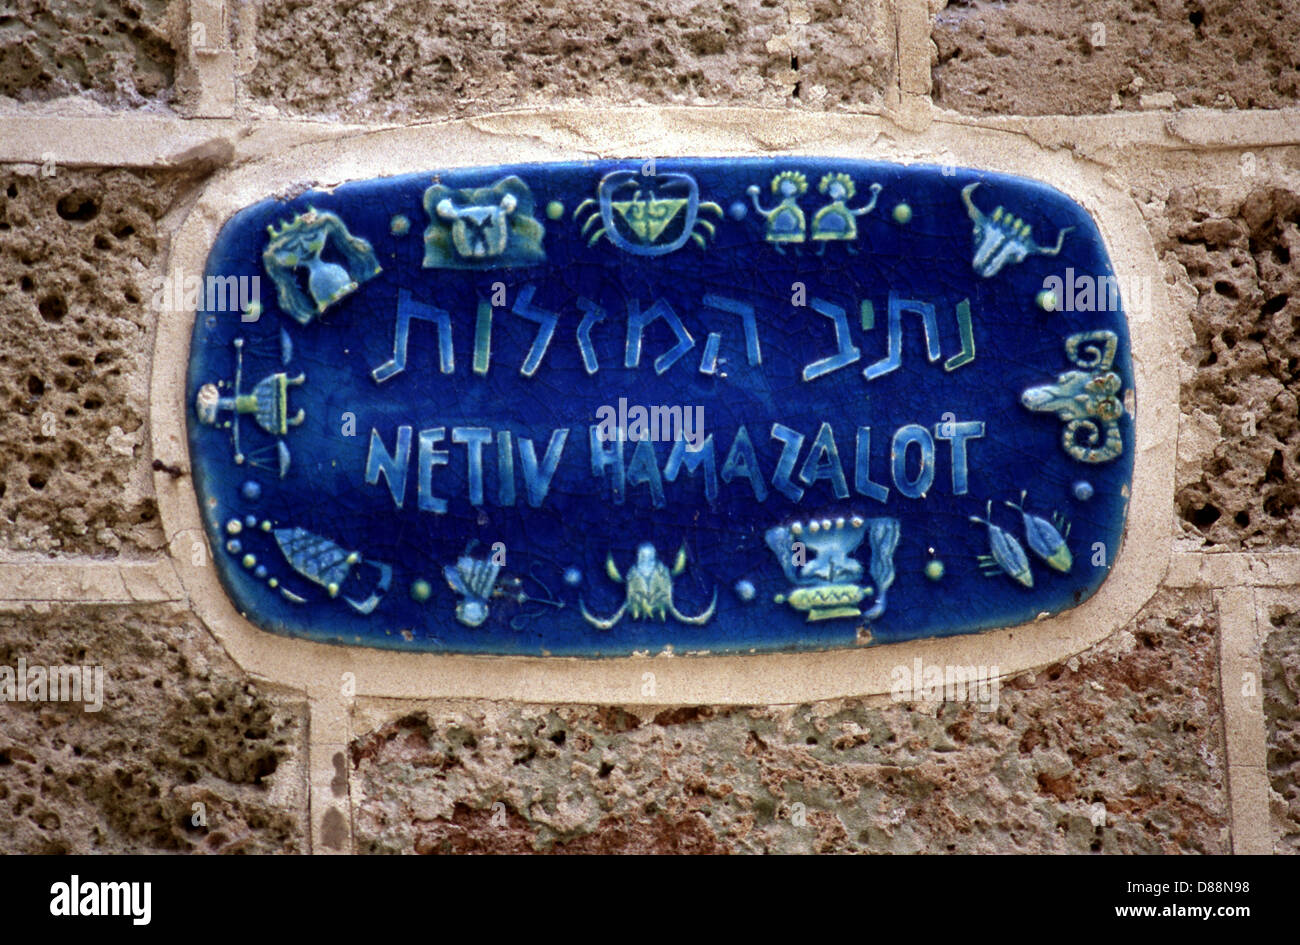 Street sign depicting Zodiac symbols in  Hebrew and English in the Old city of Jaffo Israel - Stock Image